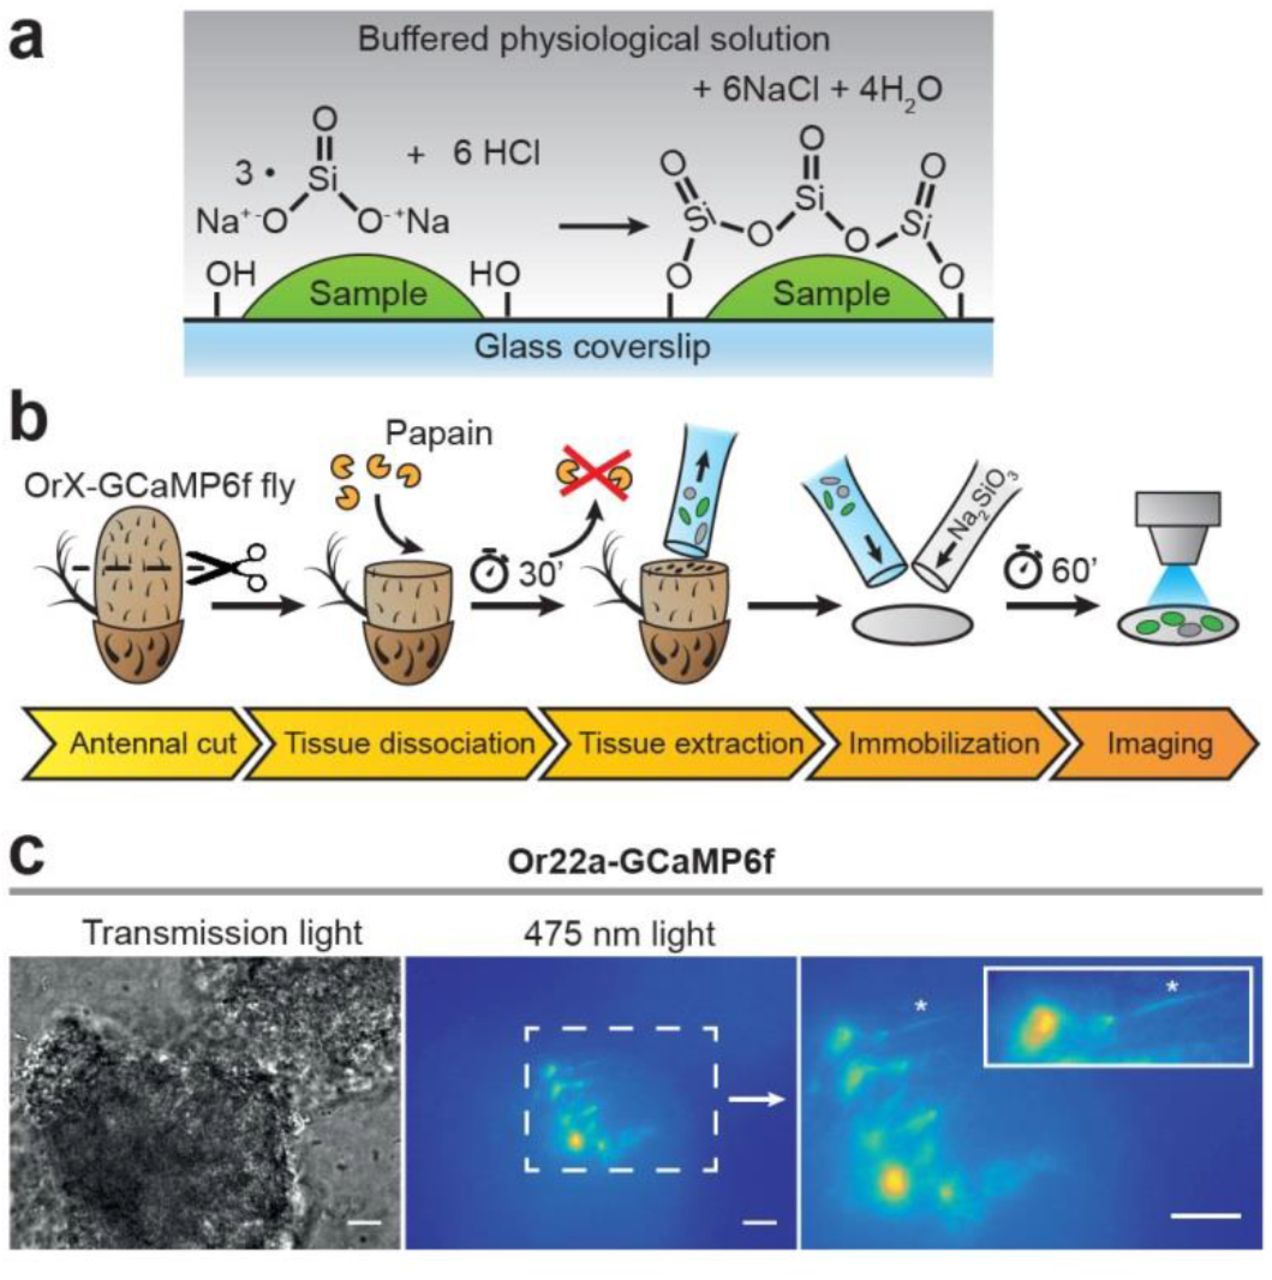 Tissue embedding in a silica hydrogel for functional investigations